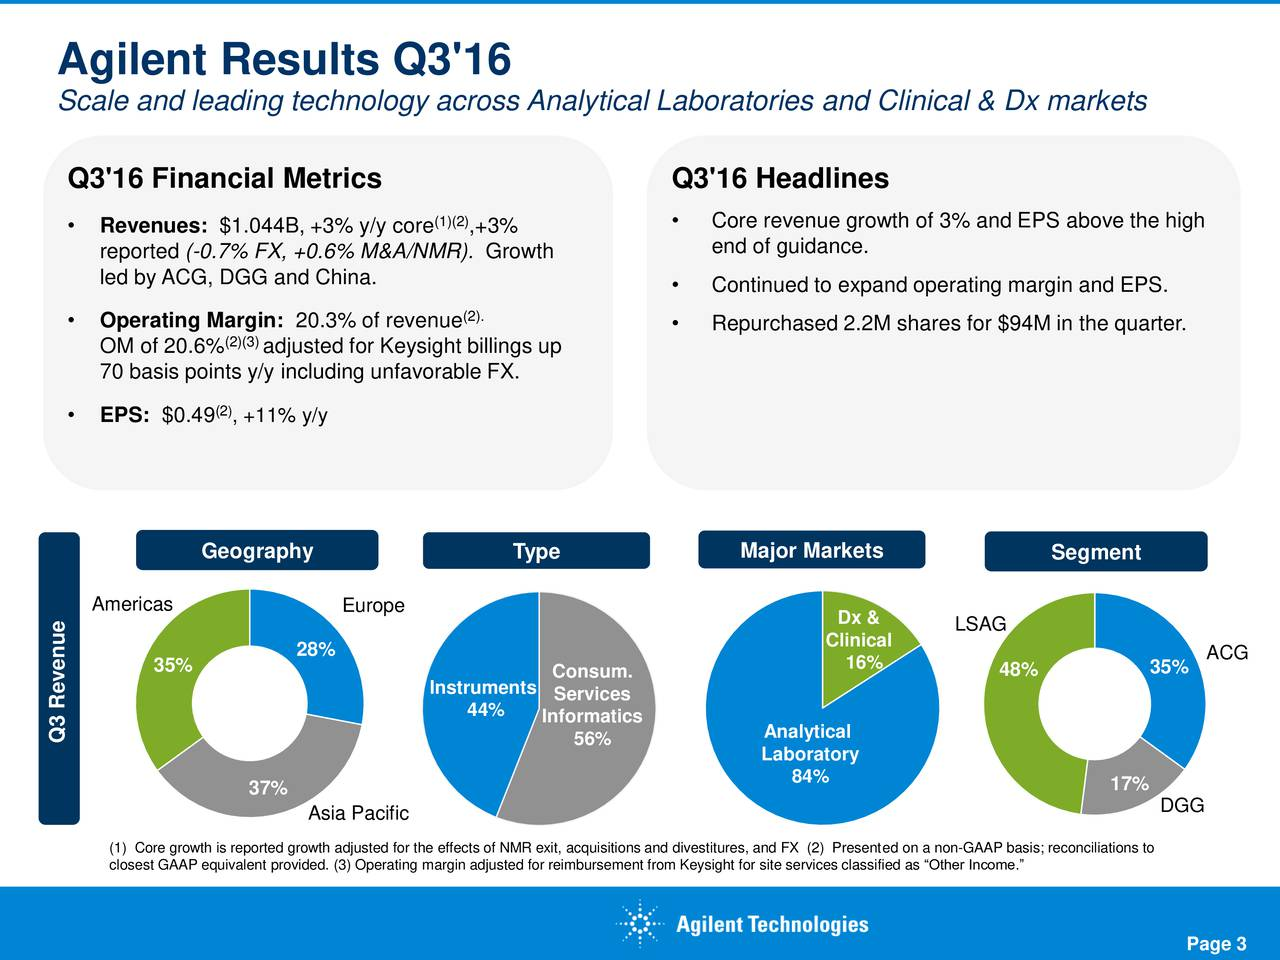 Scale and leading technology across Analytical Laboratories and Clinical & Dx markets Q3'16 Financial Metrics Q3'16 Headlines (1)(2)  Core revenue growth of 3% and EPS above the high Revenues: $1.044B, +3% y/y core ,+3% reported (-0.7% FX, +0.6% M&A/NMR). Growth end of guidance. led by ACG, DGG and China. Continued to expand operating margin and EPS. Operating Margin: 20.3% of revenue (2). (2)(3)  Repurchased 2.2M shares for $94M in the quarter. OM of 20.6% adjusted for Keysight billings up 70 basis points y/y including unfavorable FX. EPS: $0.49 (, +11% y/y Geography Type Major Markets Segment Americas Europe Dx & Clinical LSAG 28% 16% ACG 35% Consum. 48% 35% Instruments Services 44% Informatics Q3 Revenue 56% Analytical Laboratory 84% 37% 17% Asia Pacific DGG closest GAAP equivalent provided. (3) Operating margin adjusted for reimbursement from Keysight for site services classified as Other Income.s; reconciliations to Page 3